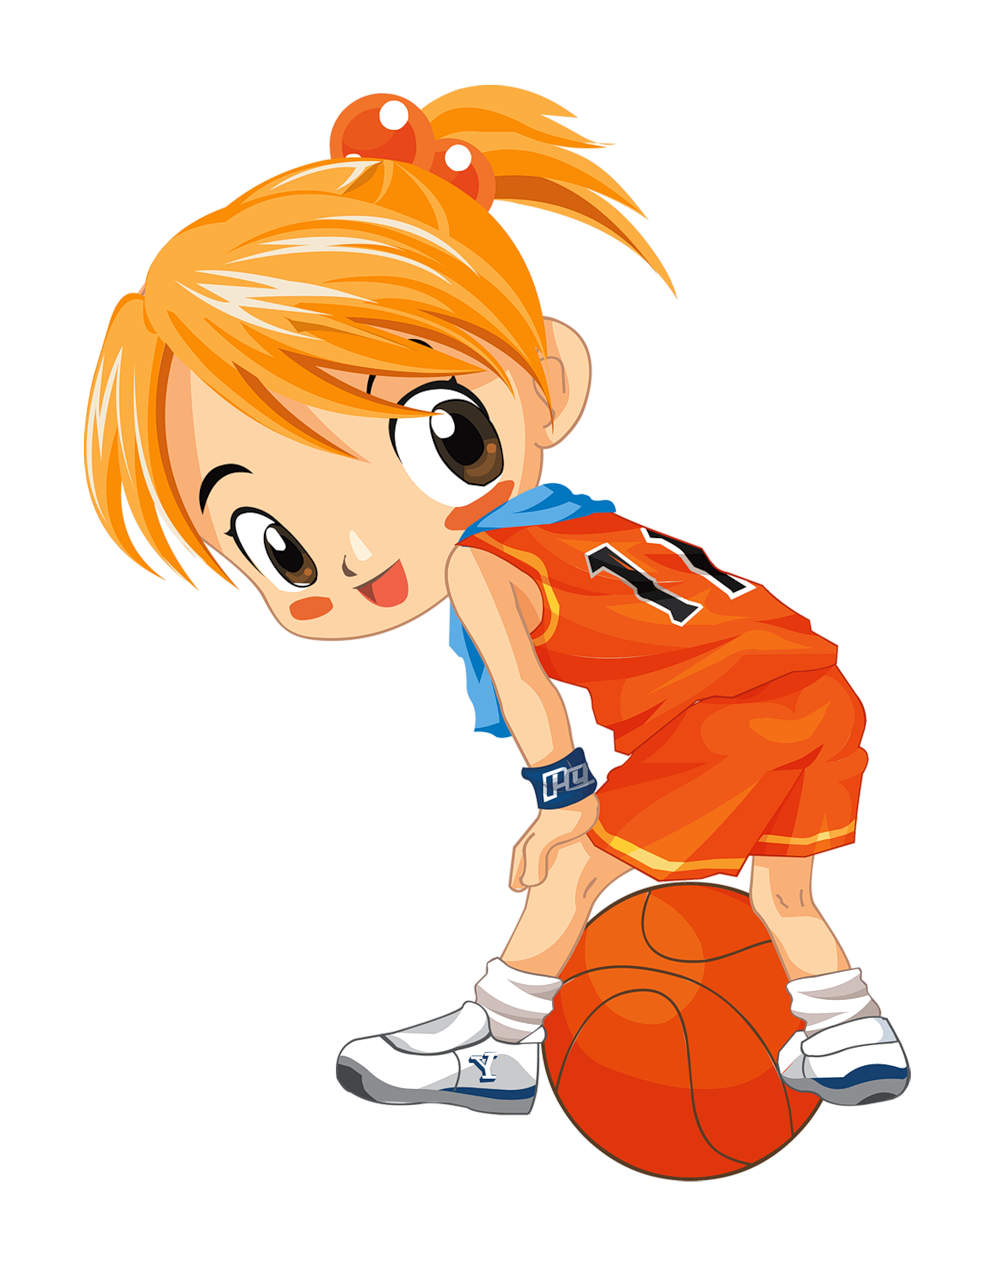 Clipart baby basketball. L minas infantiles y